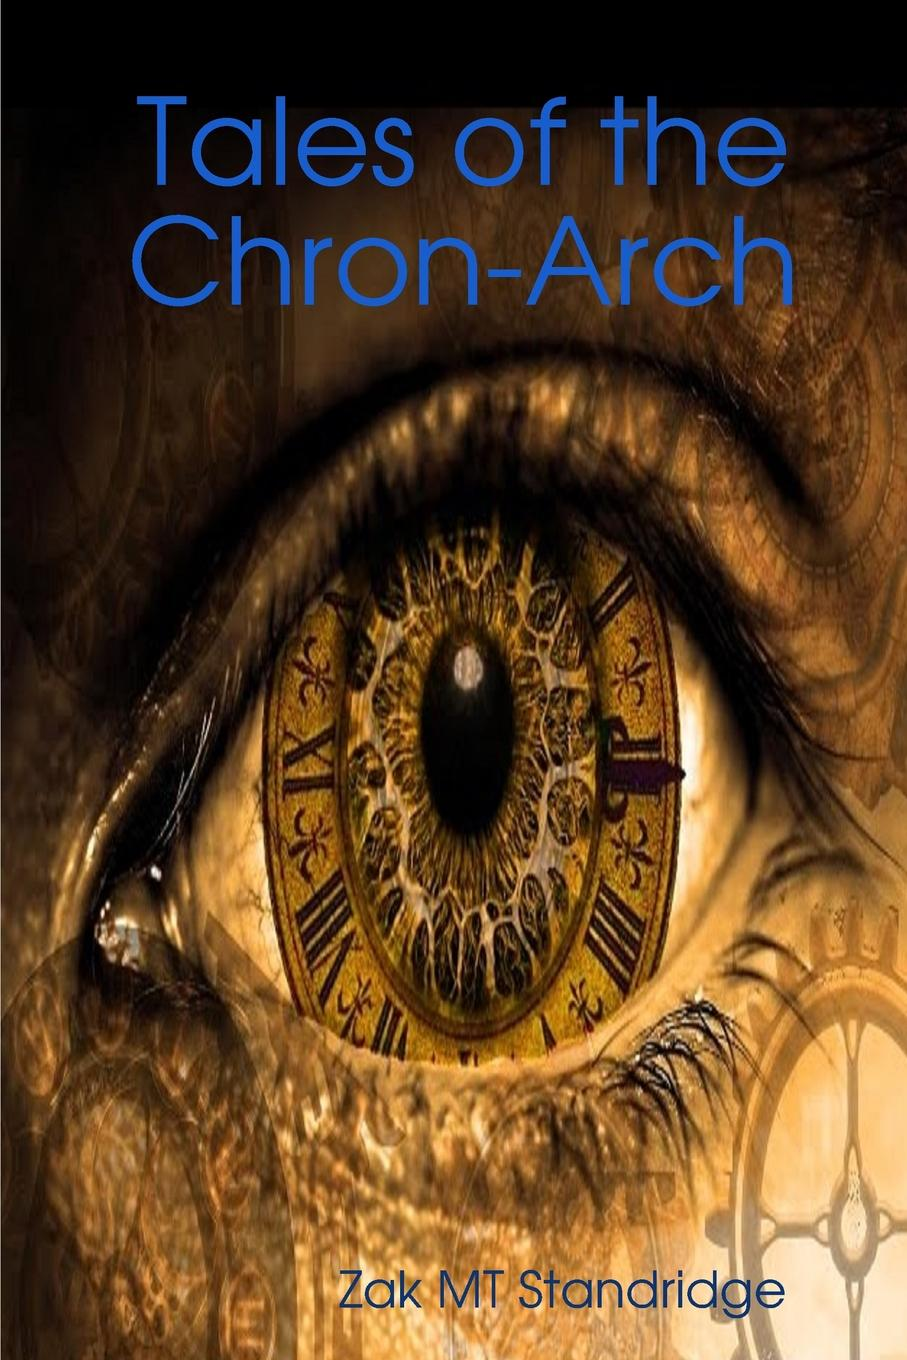 Zak MT Standridge Tales of the Chron-Arch henry o collected tales iii the sleuths witches loaves pride of the cities